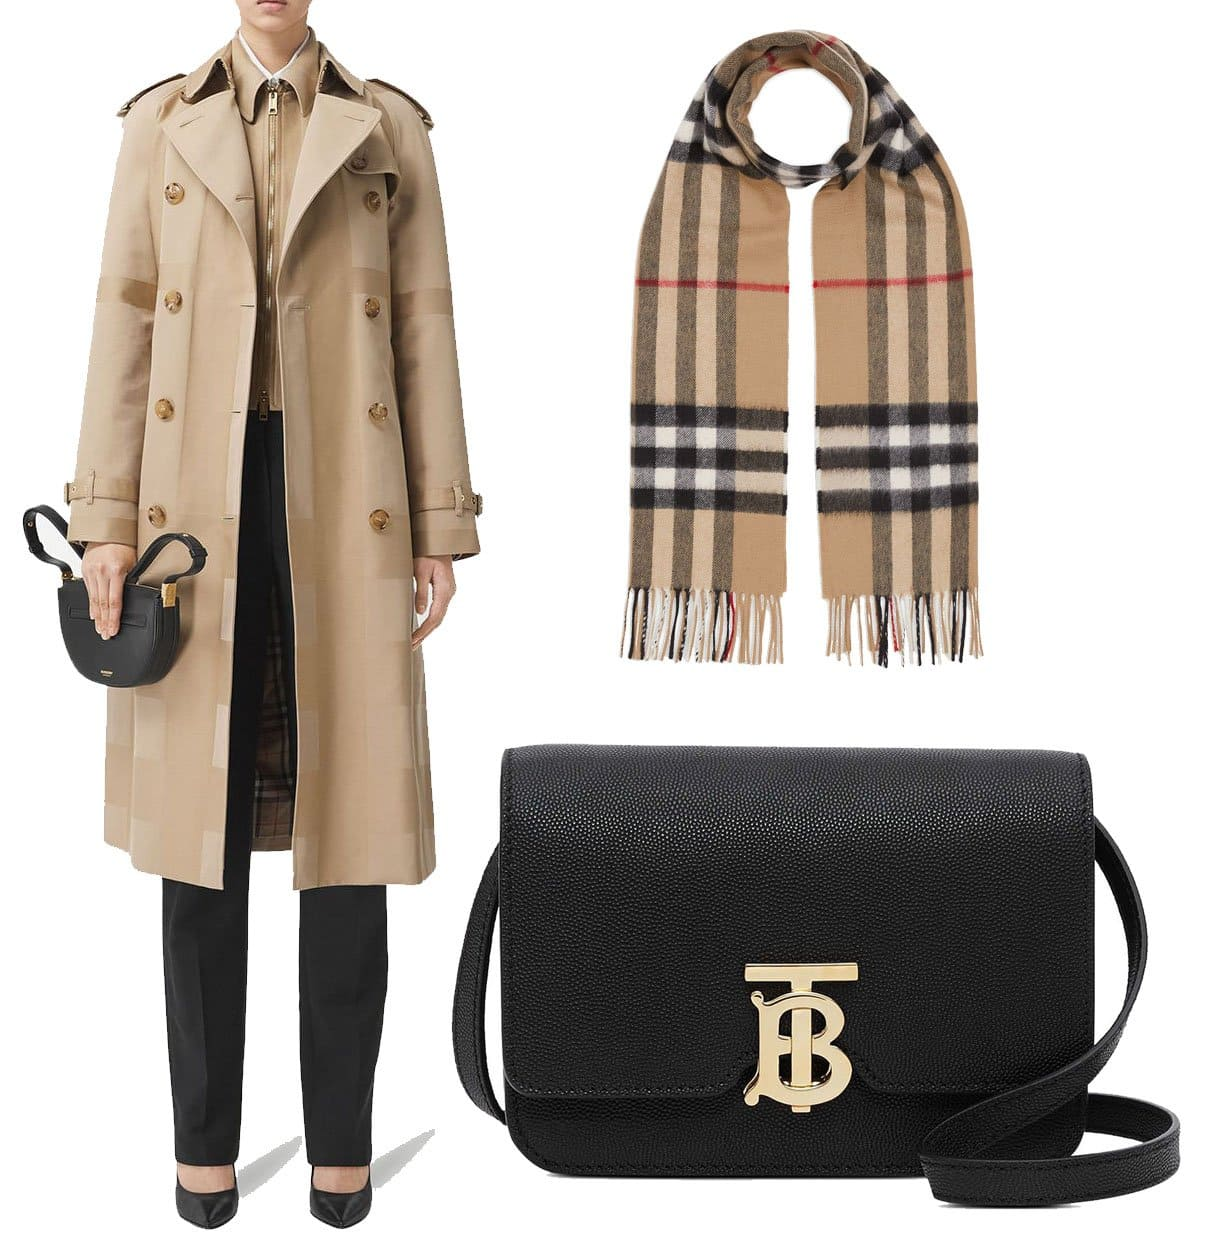 Known for its classic checkered scarf and beige trench coat, Burberry now also incorporates its interlocking TB logo to its handbags and small leather goods